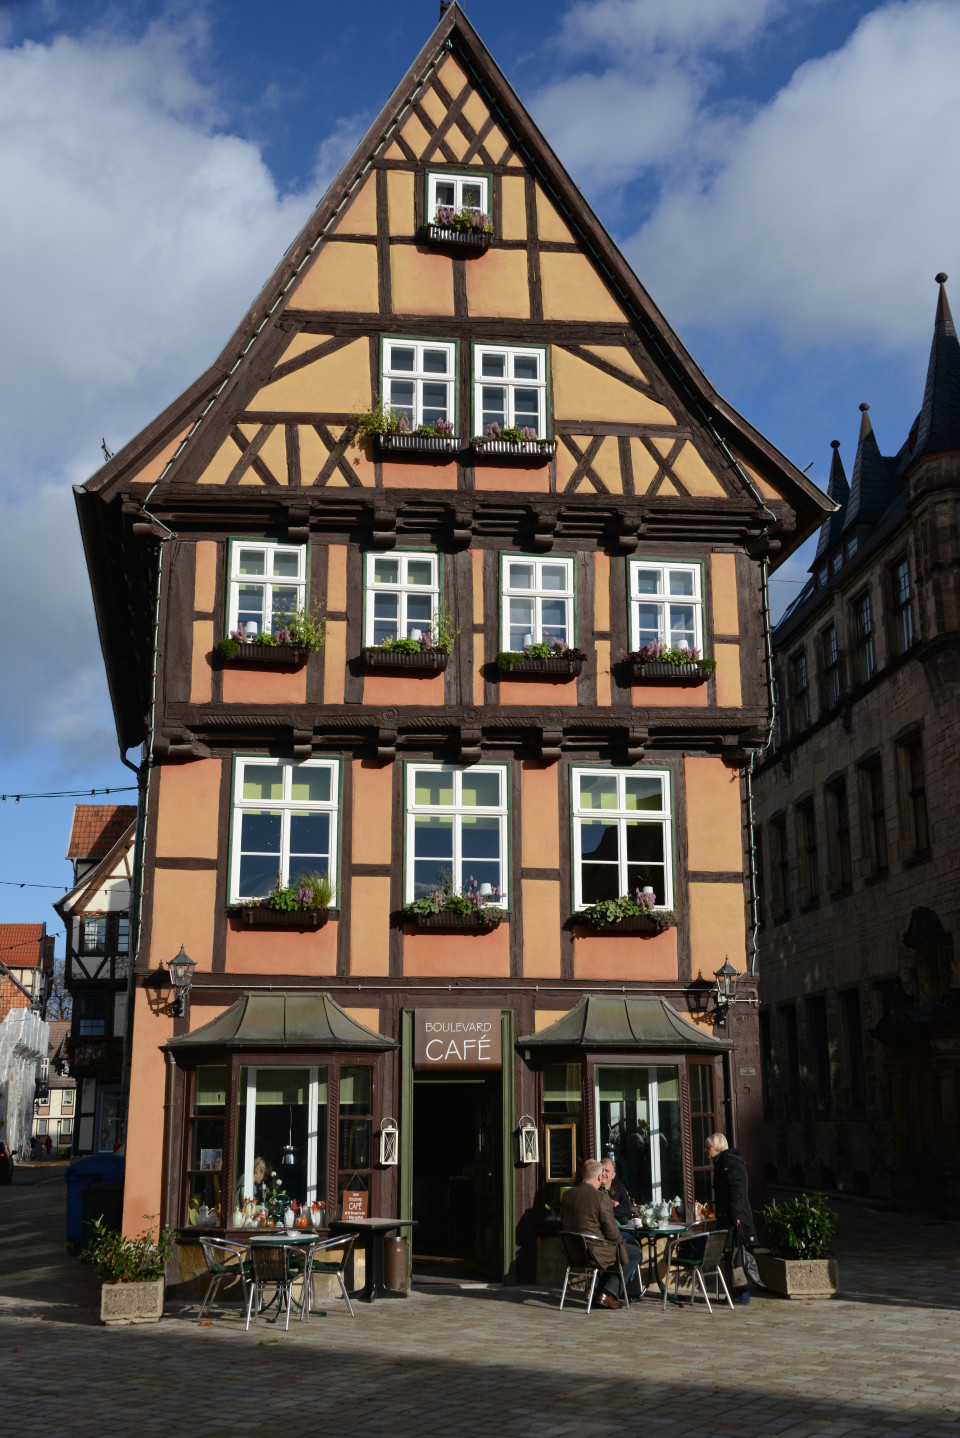 The half-timbered houses of Quedlinburg.